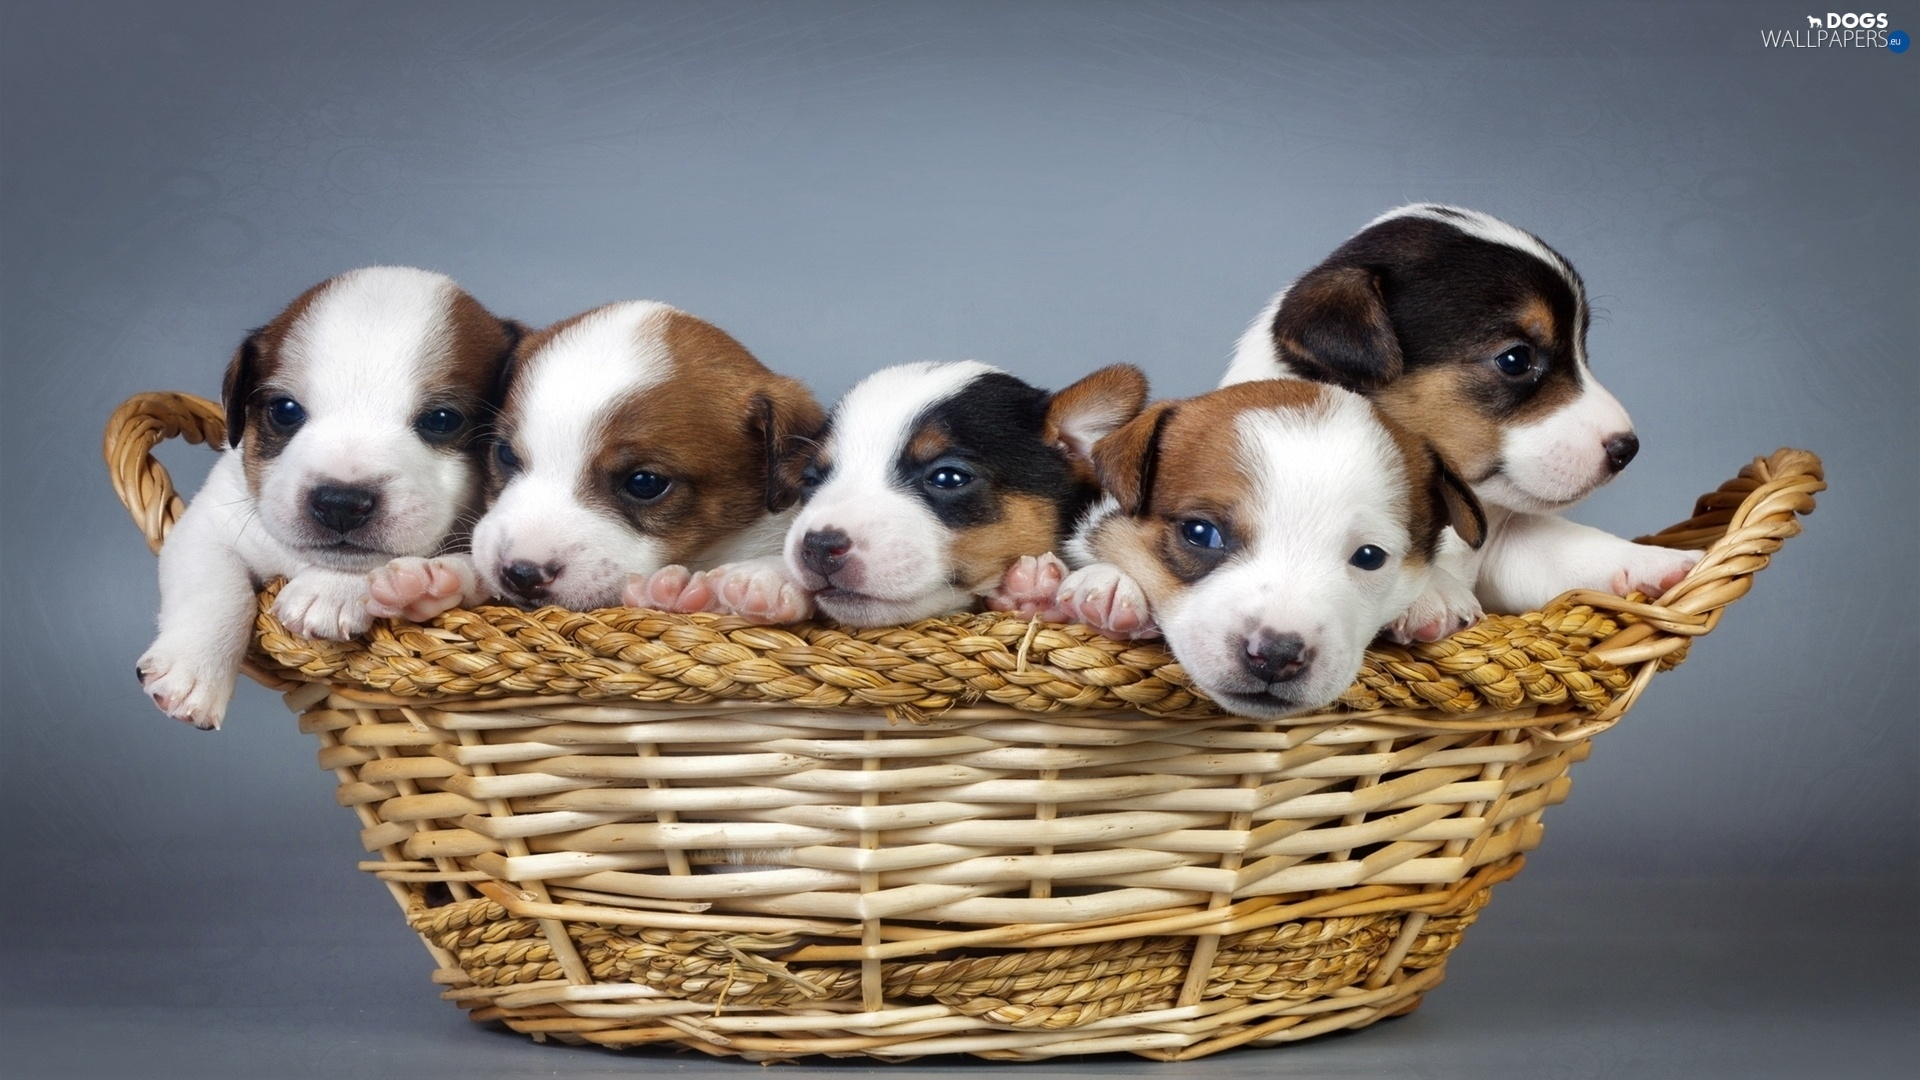 lovely animals basket puppies basket dogs wallpapers